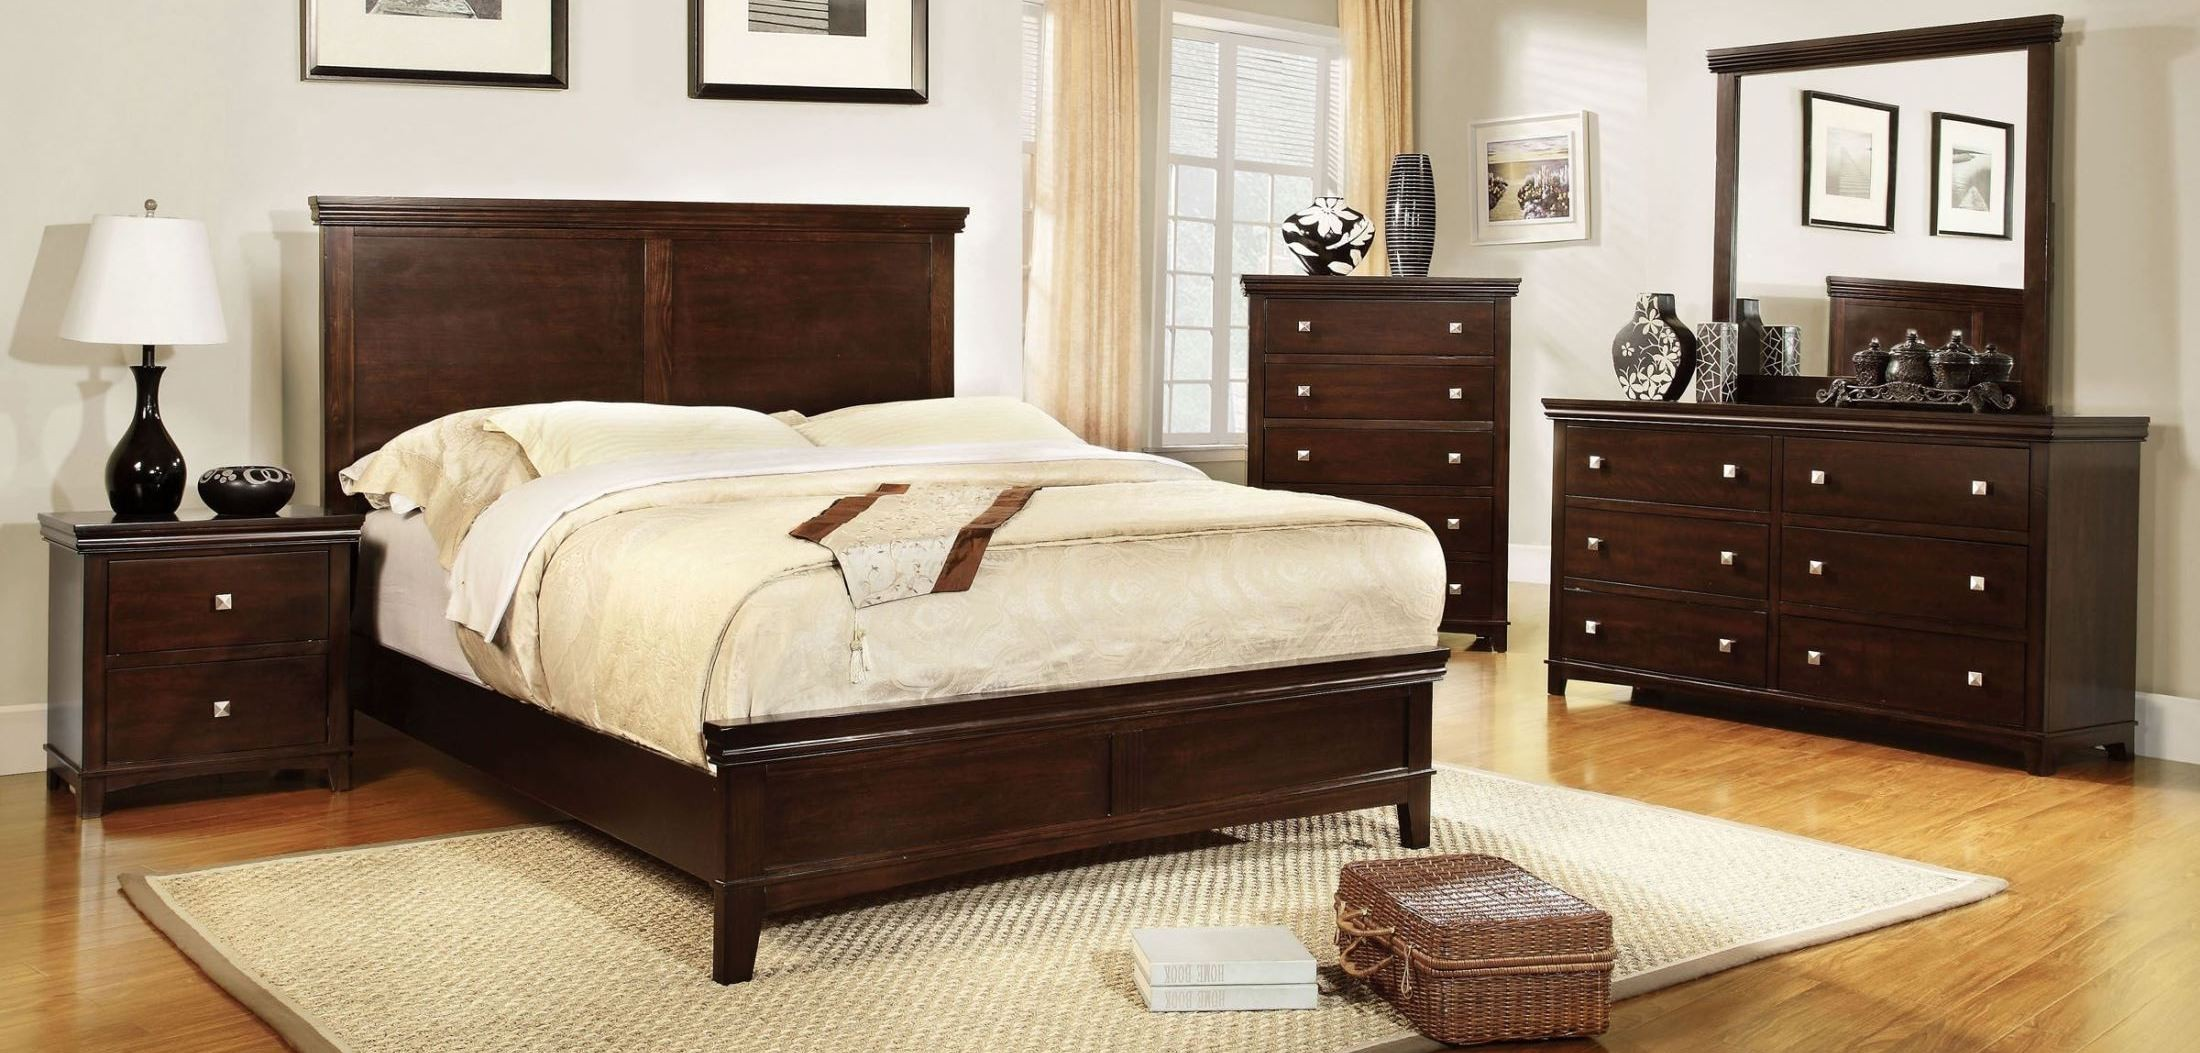 Spruce Brown Cherry Youth Panel Bedroom Set From Furniture